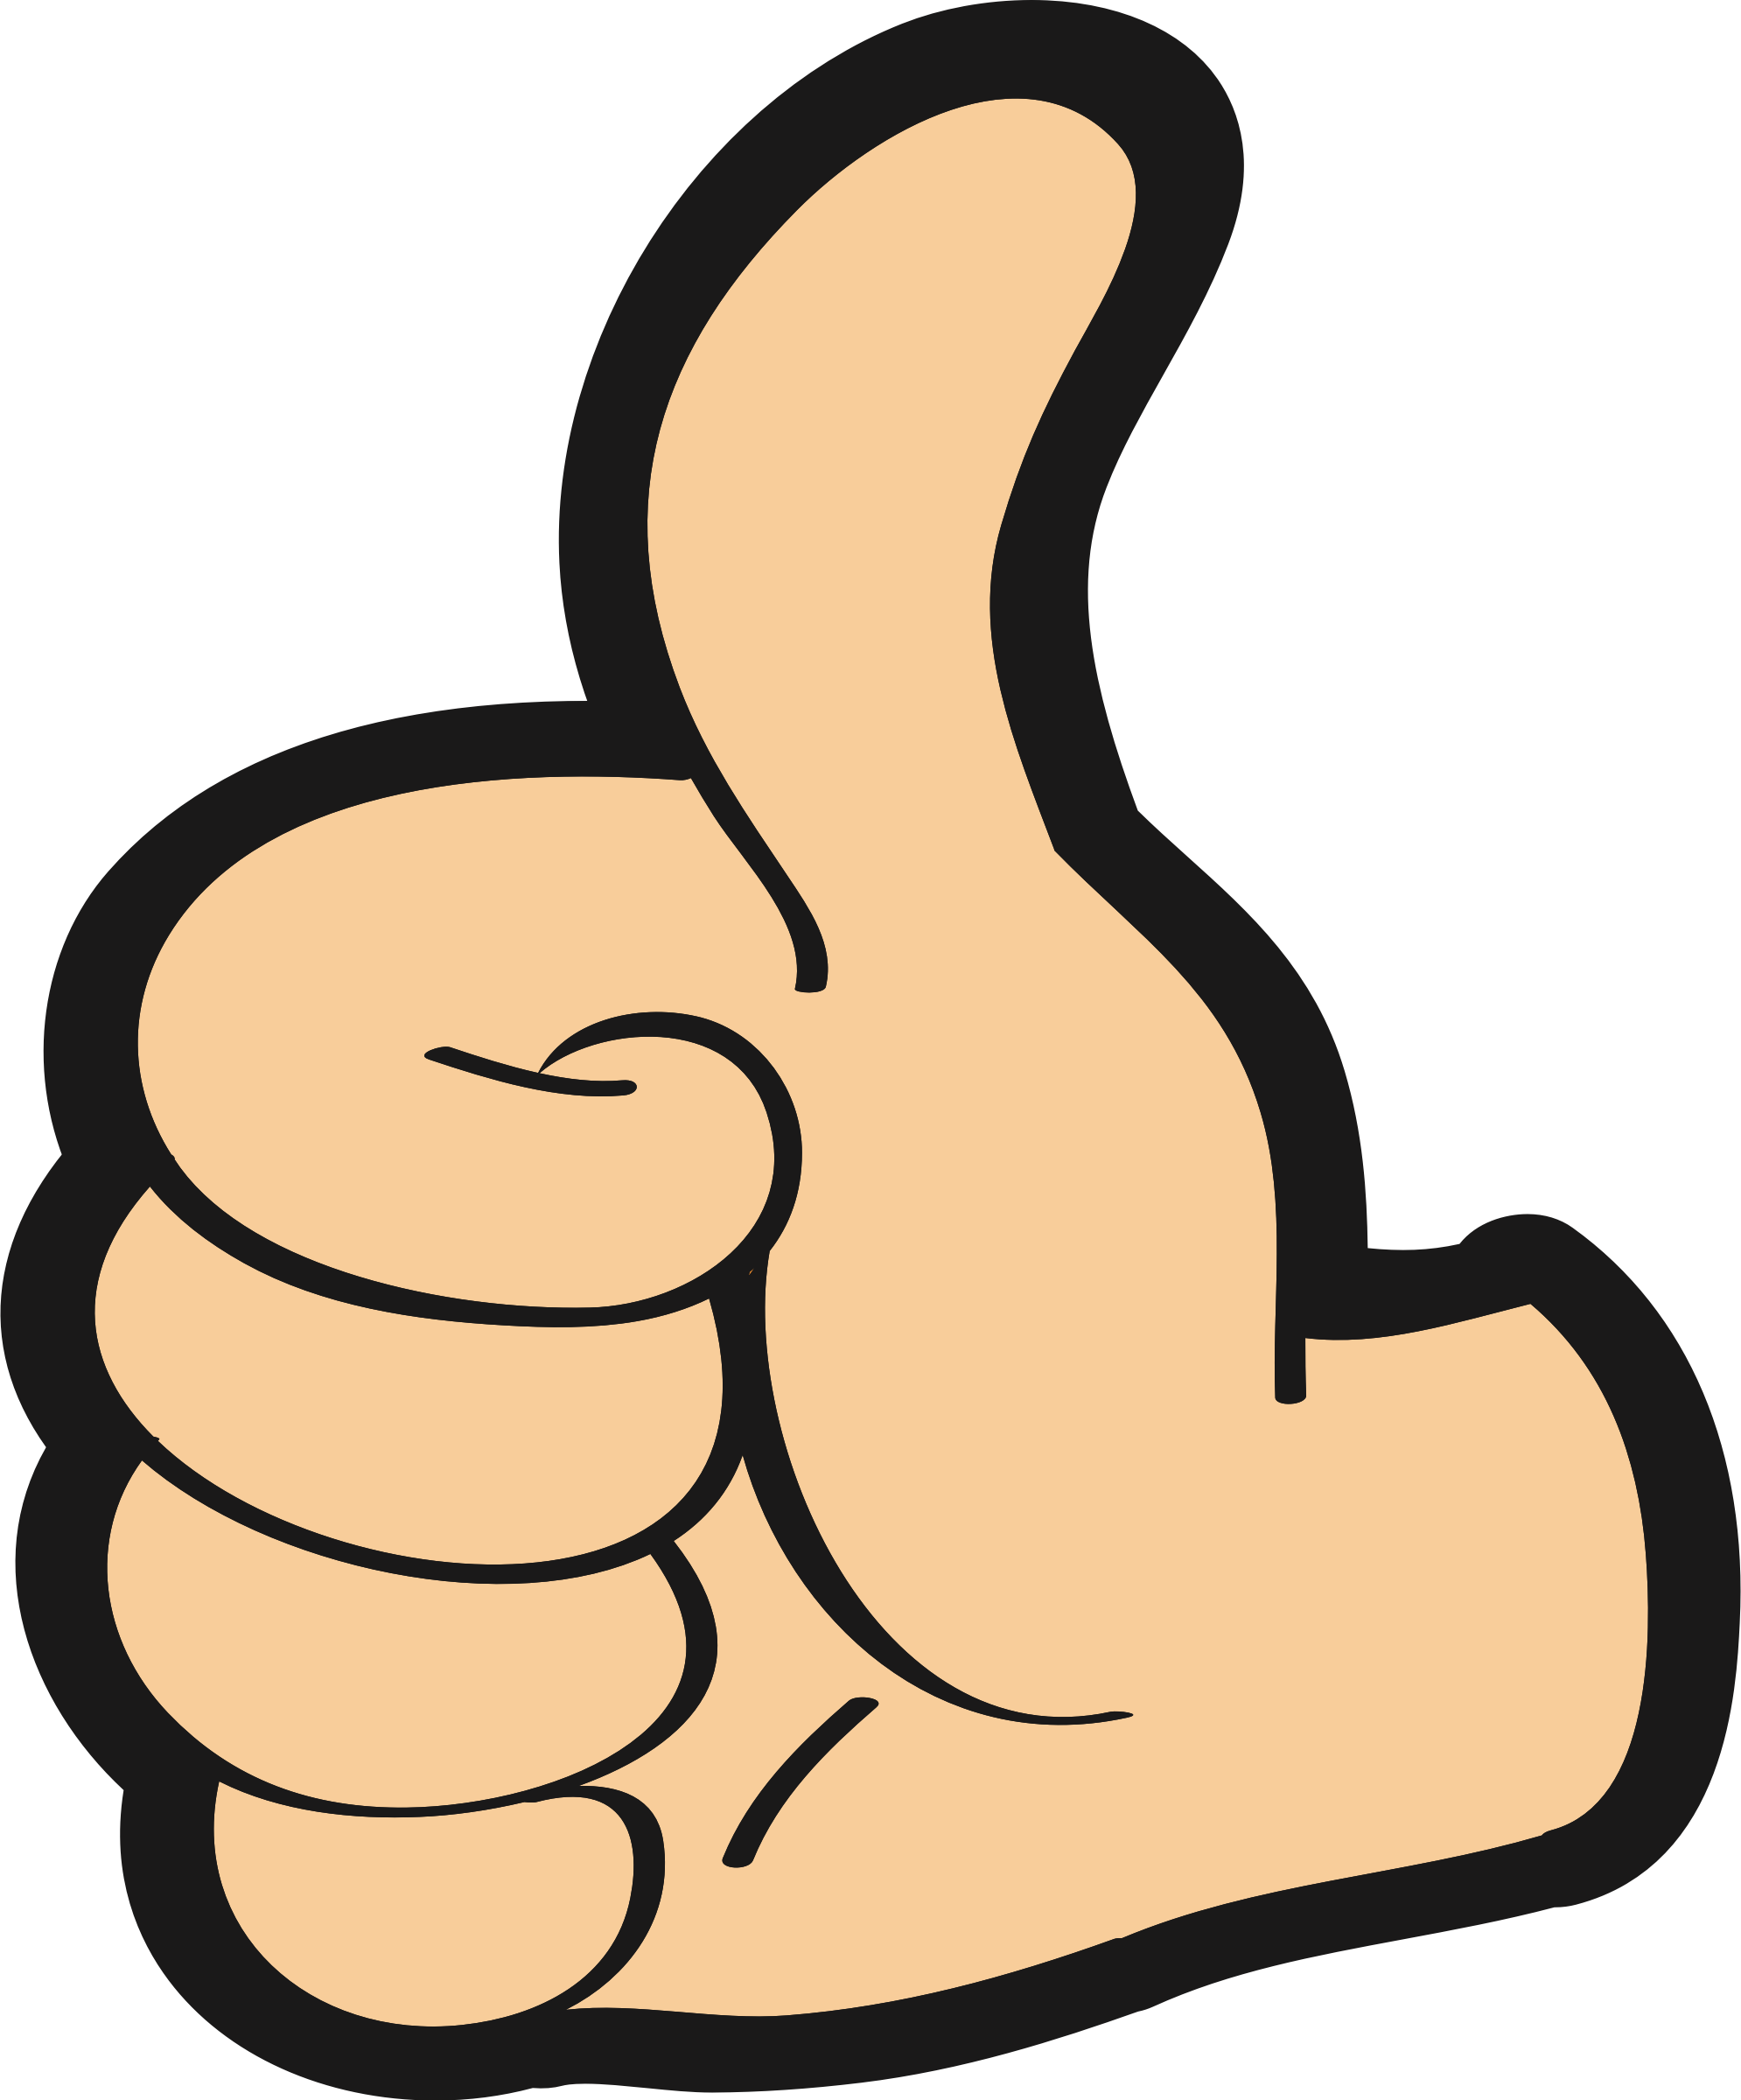 clipart thumbs up rh openclipart org clipart thumb up clipart thumb up